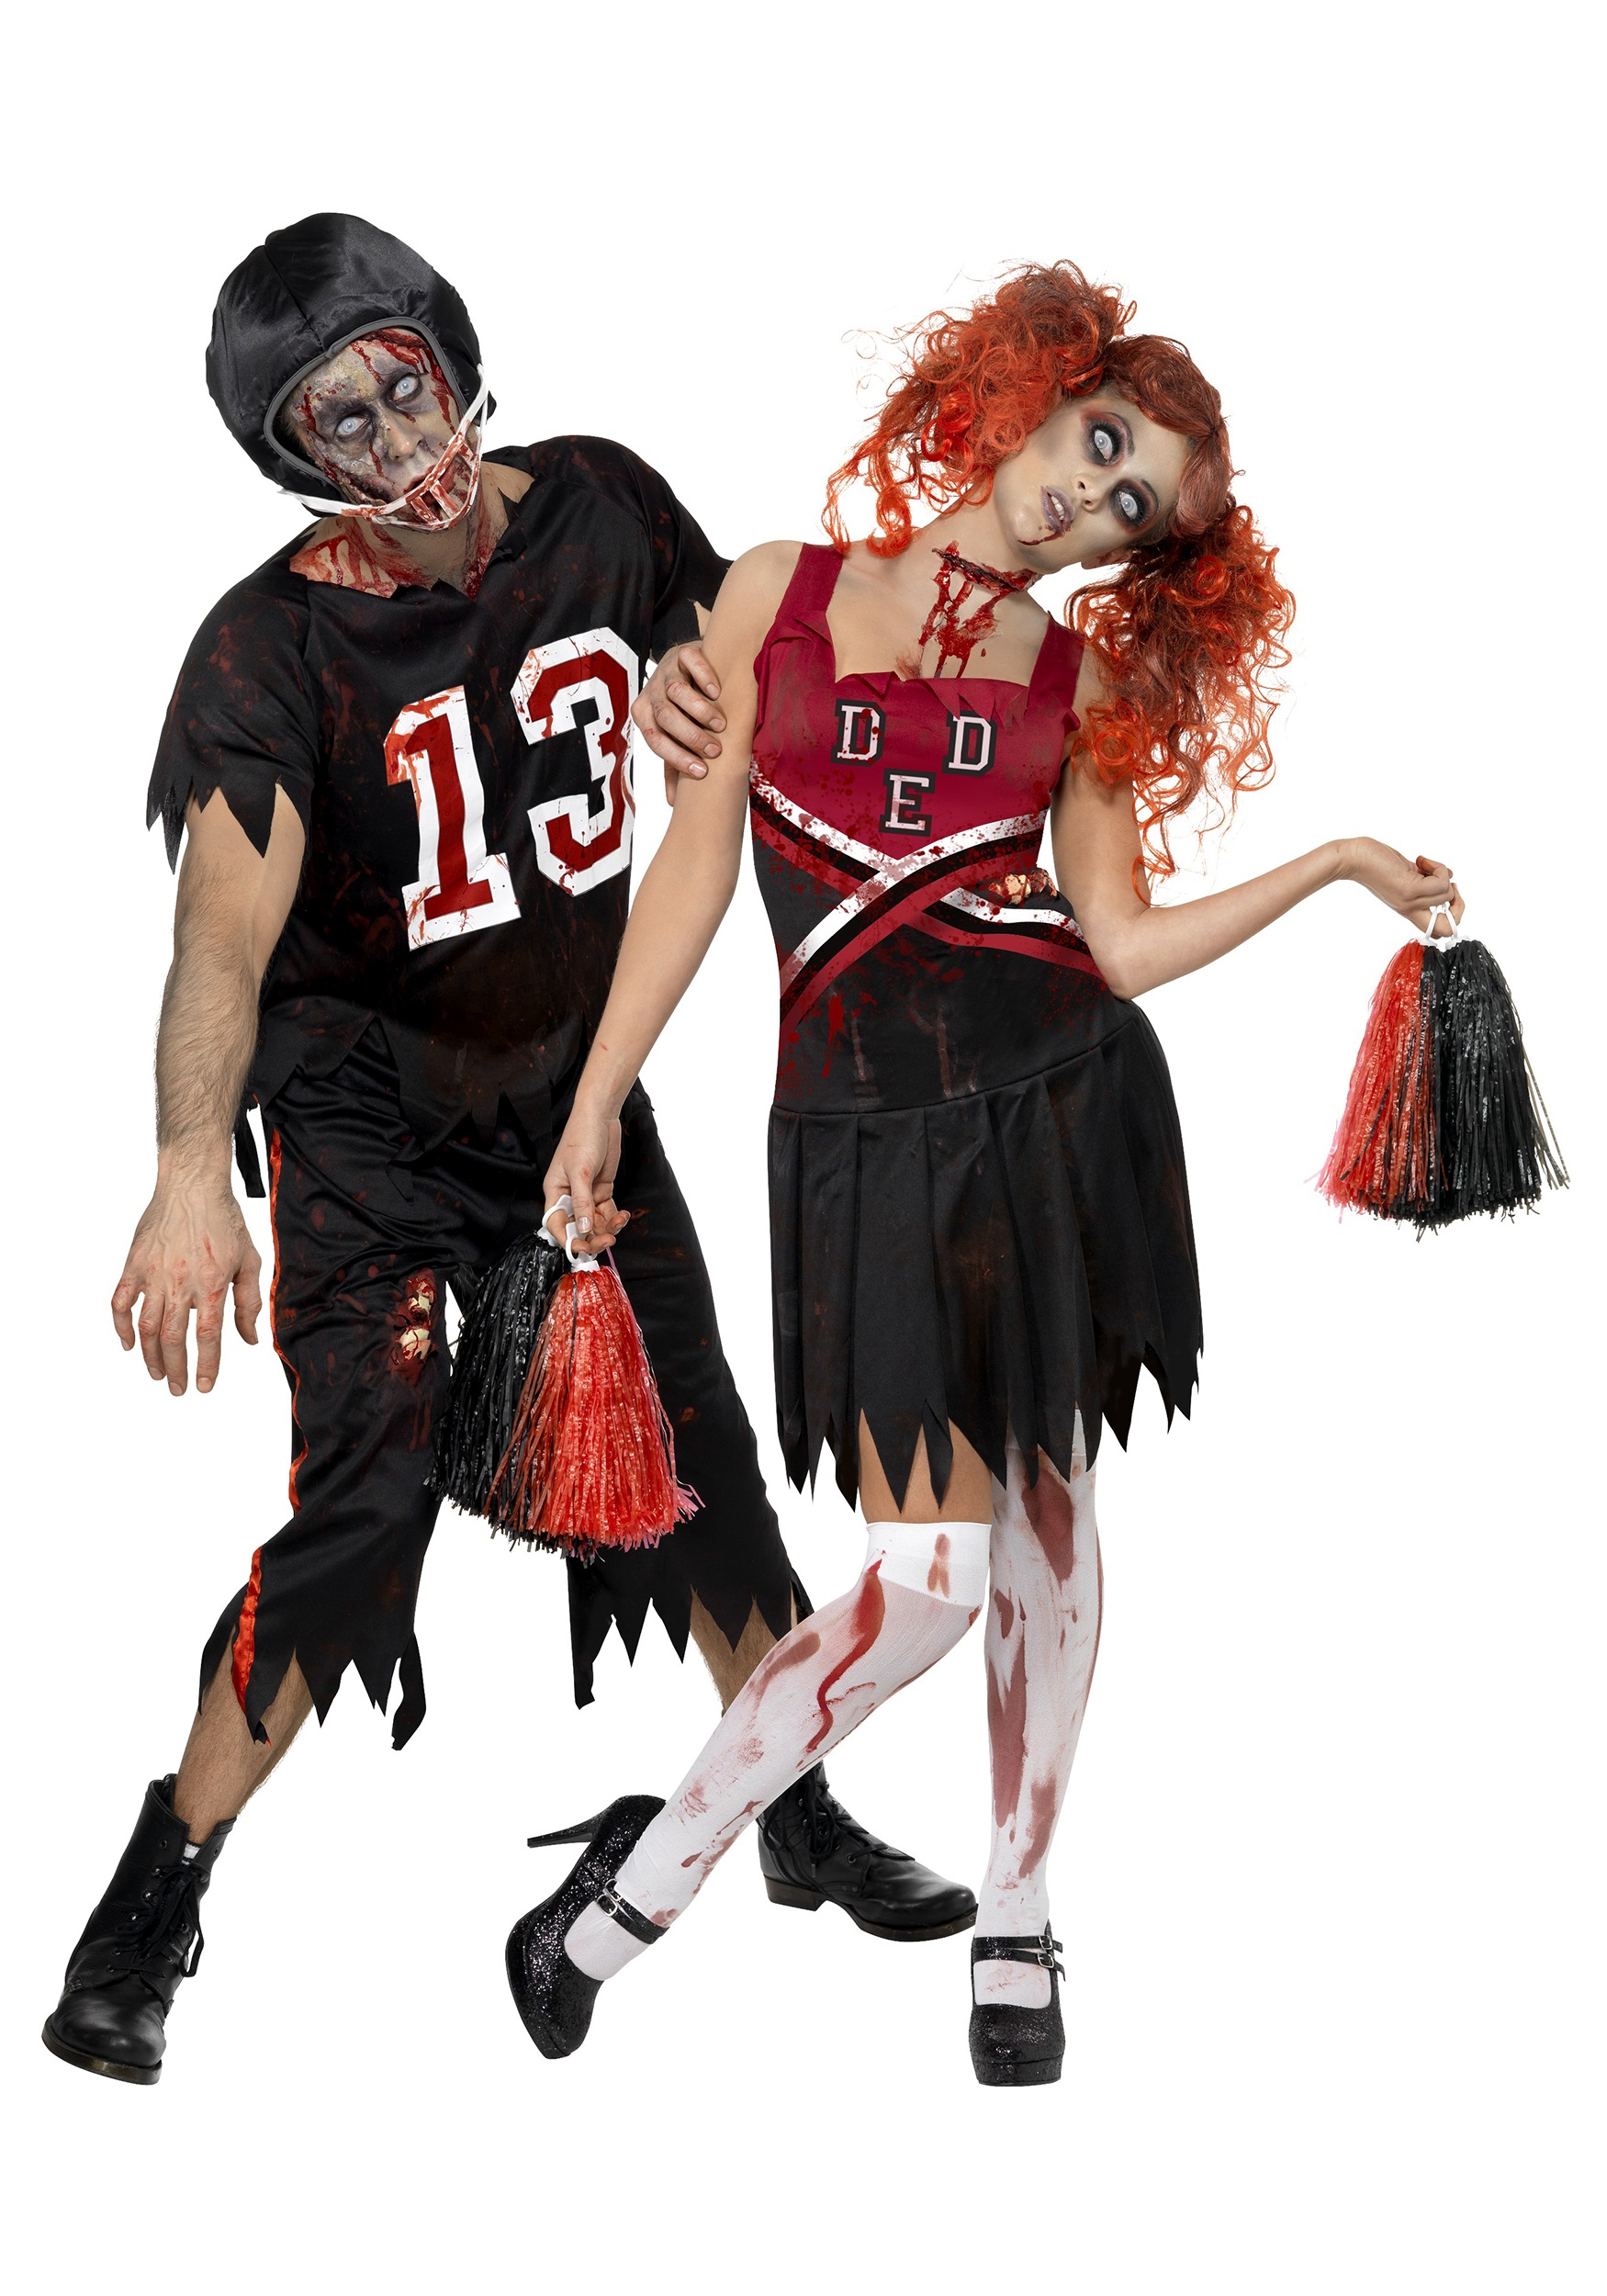 zombie cheerleader costume couple image - Halloween Costumes Of Zombies